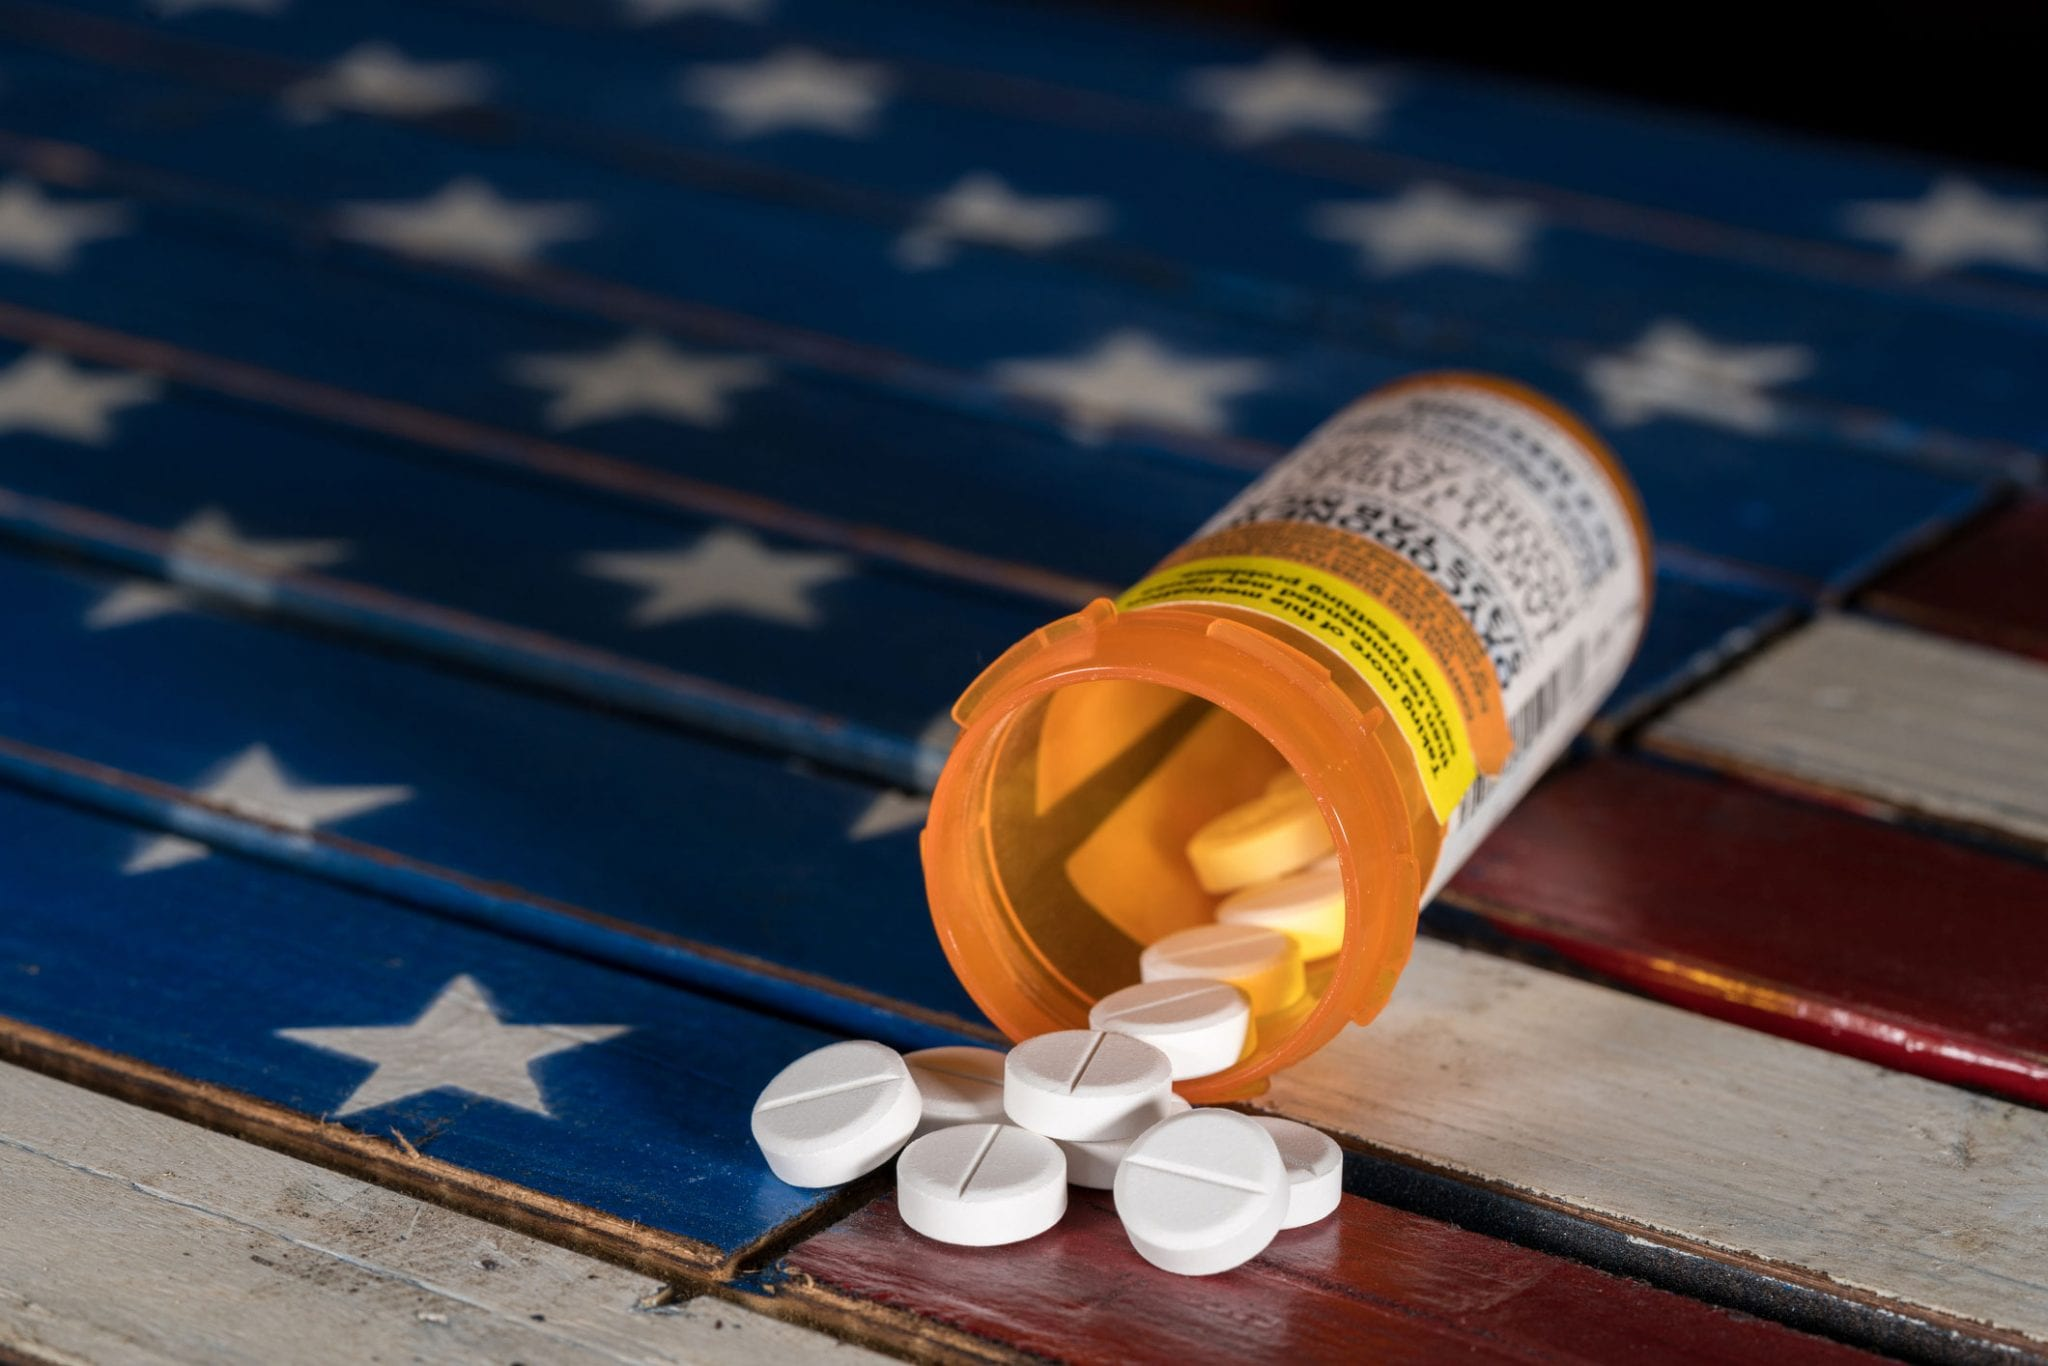 CDC: Connecticut Opioid Deaths in 2020 Spike Almost 15 Percent to 1,359